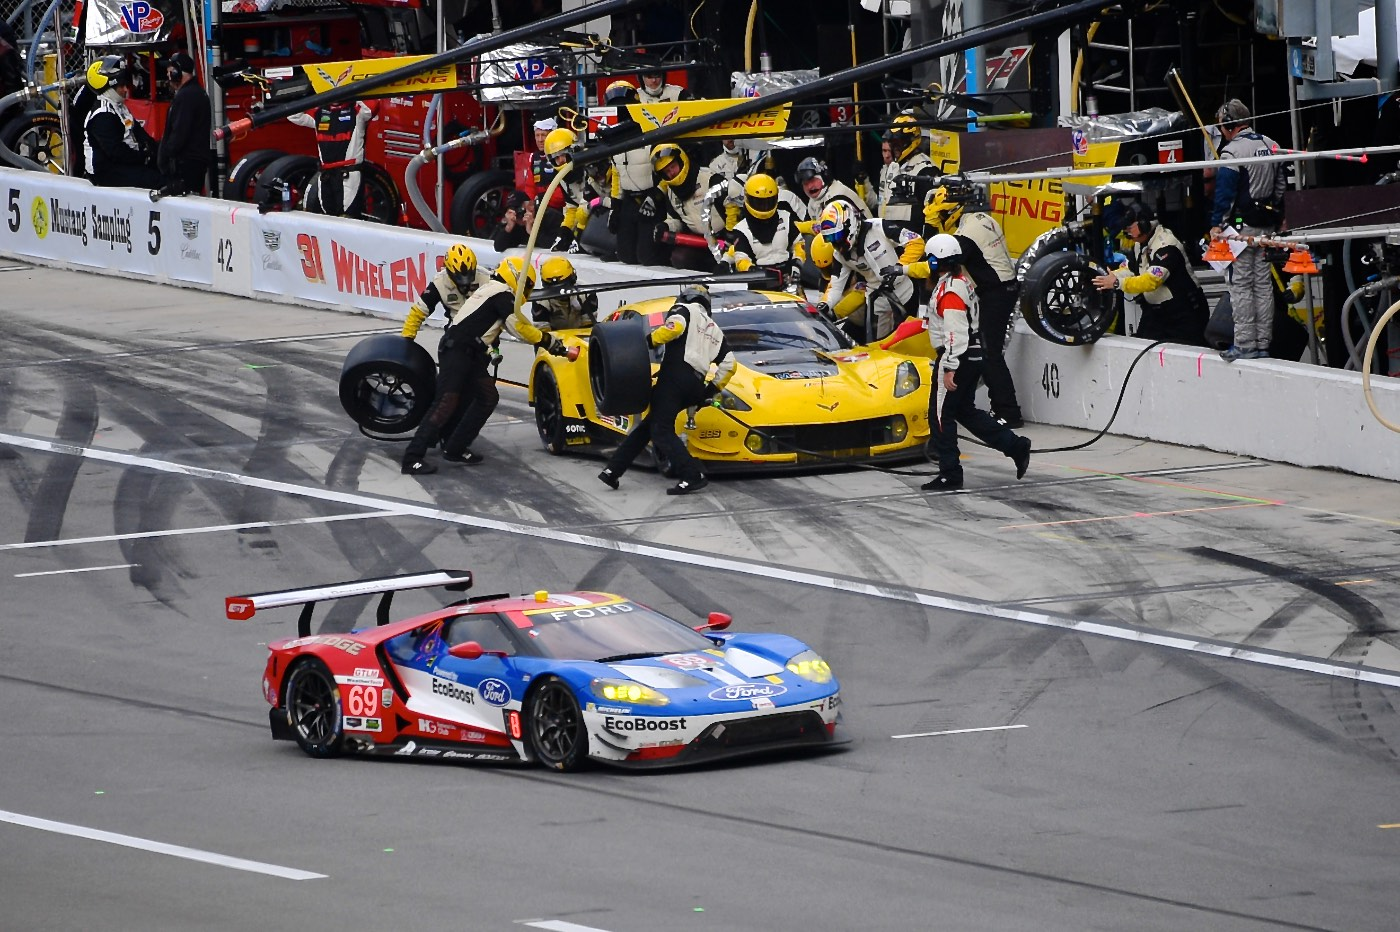 6 Hour mark: Rolex 24 at Daytona